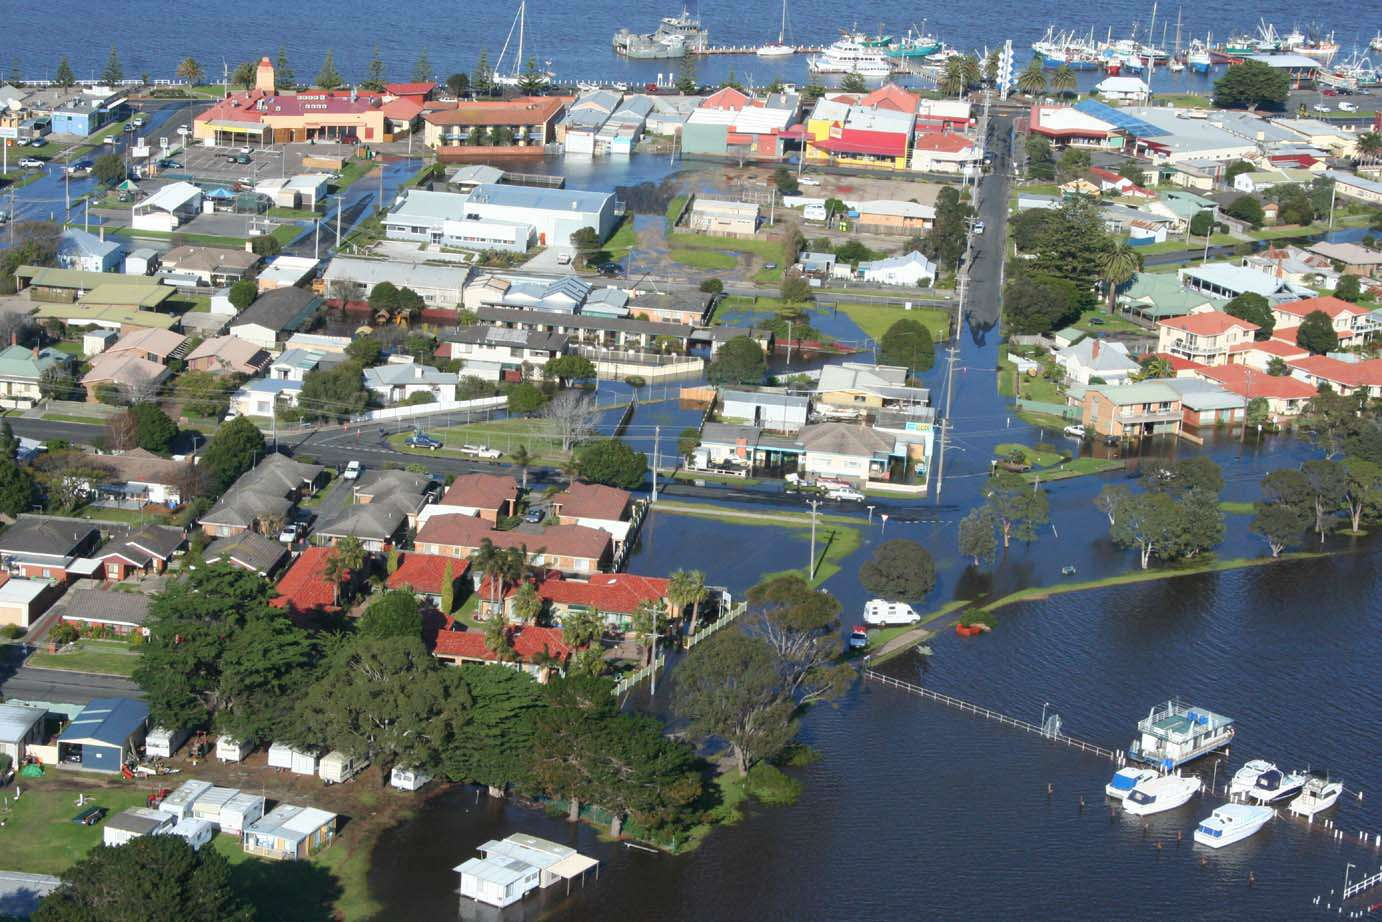 Coastal flooding at Lakes Entrance. Source: Rex Candy East Gippsland Catchment Management Authority